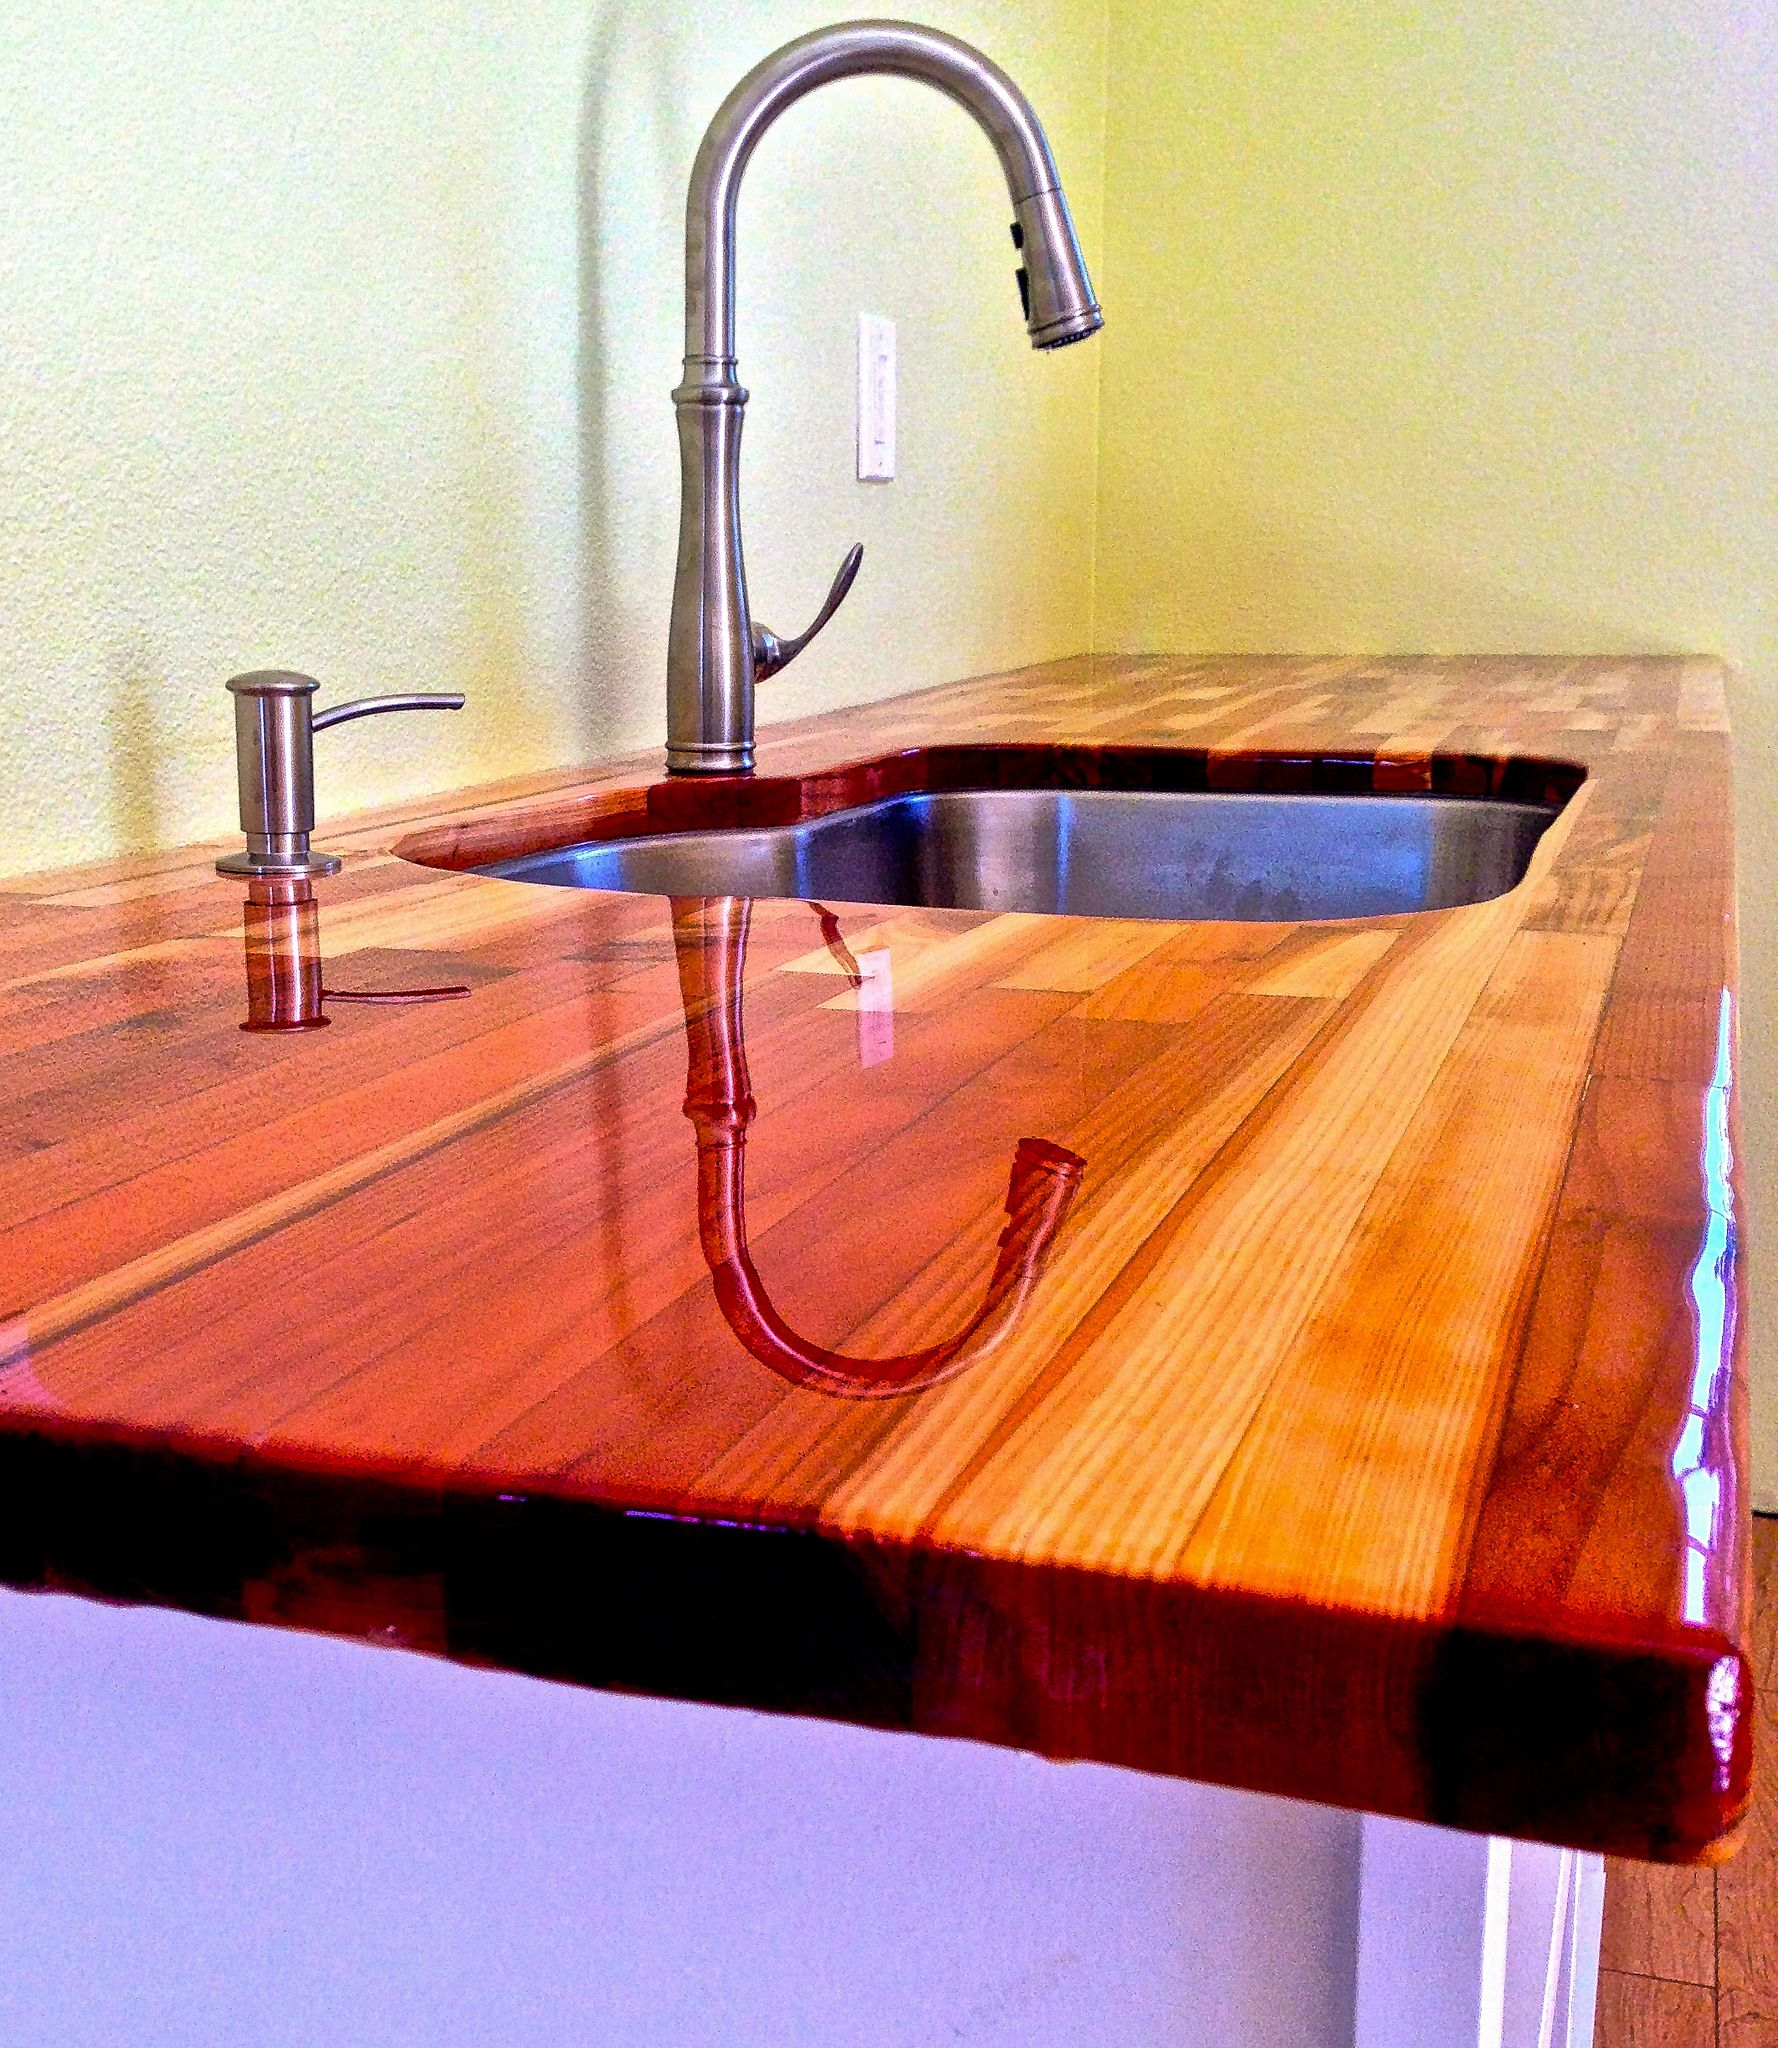 How To Waterproof Wood Countertops Wood Countertop With Ultraclear Epoxy Photo Gallery My